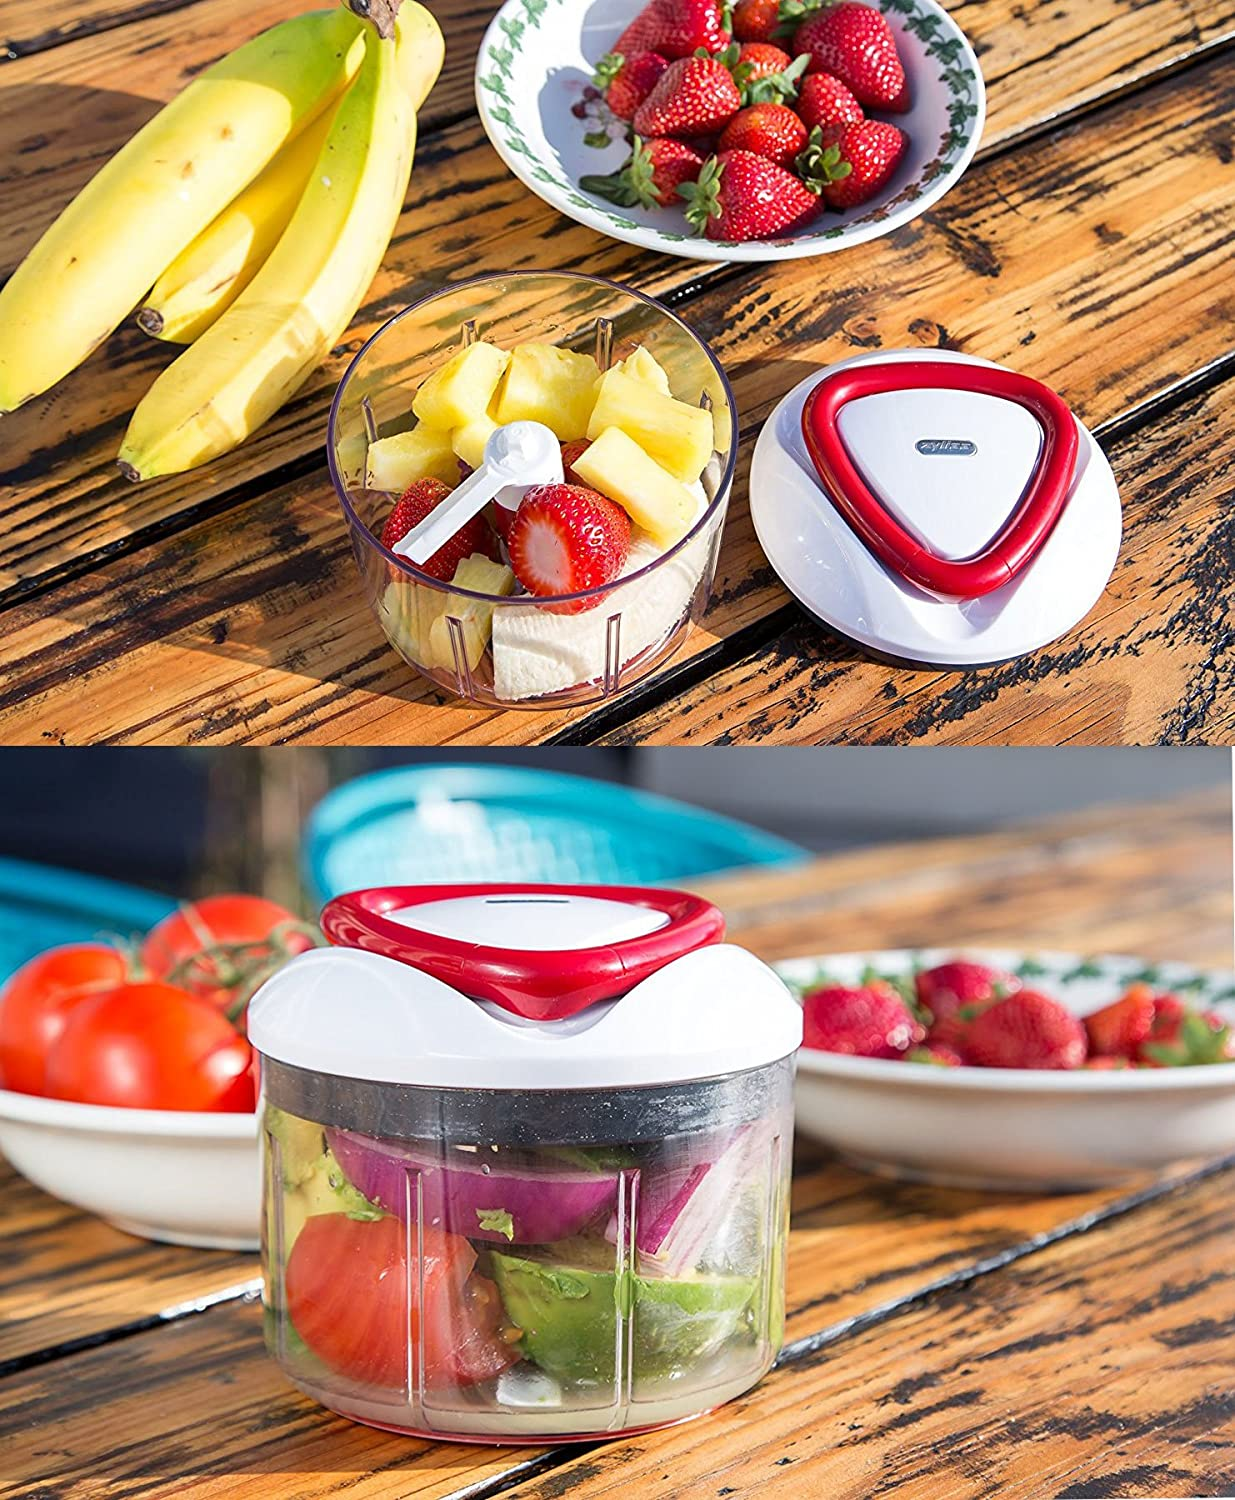 ZYLISS Easy Pull Fruit Chopper and Hand Held Manual Food Processor